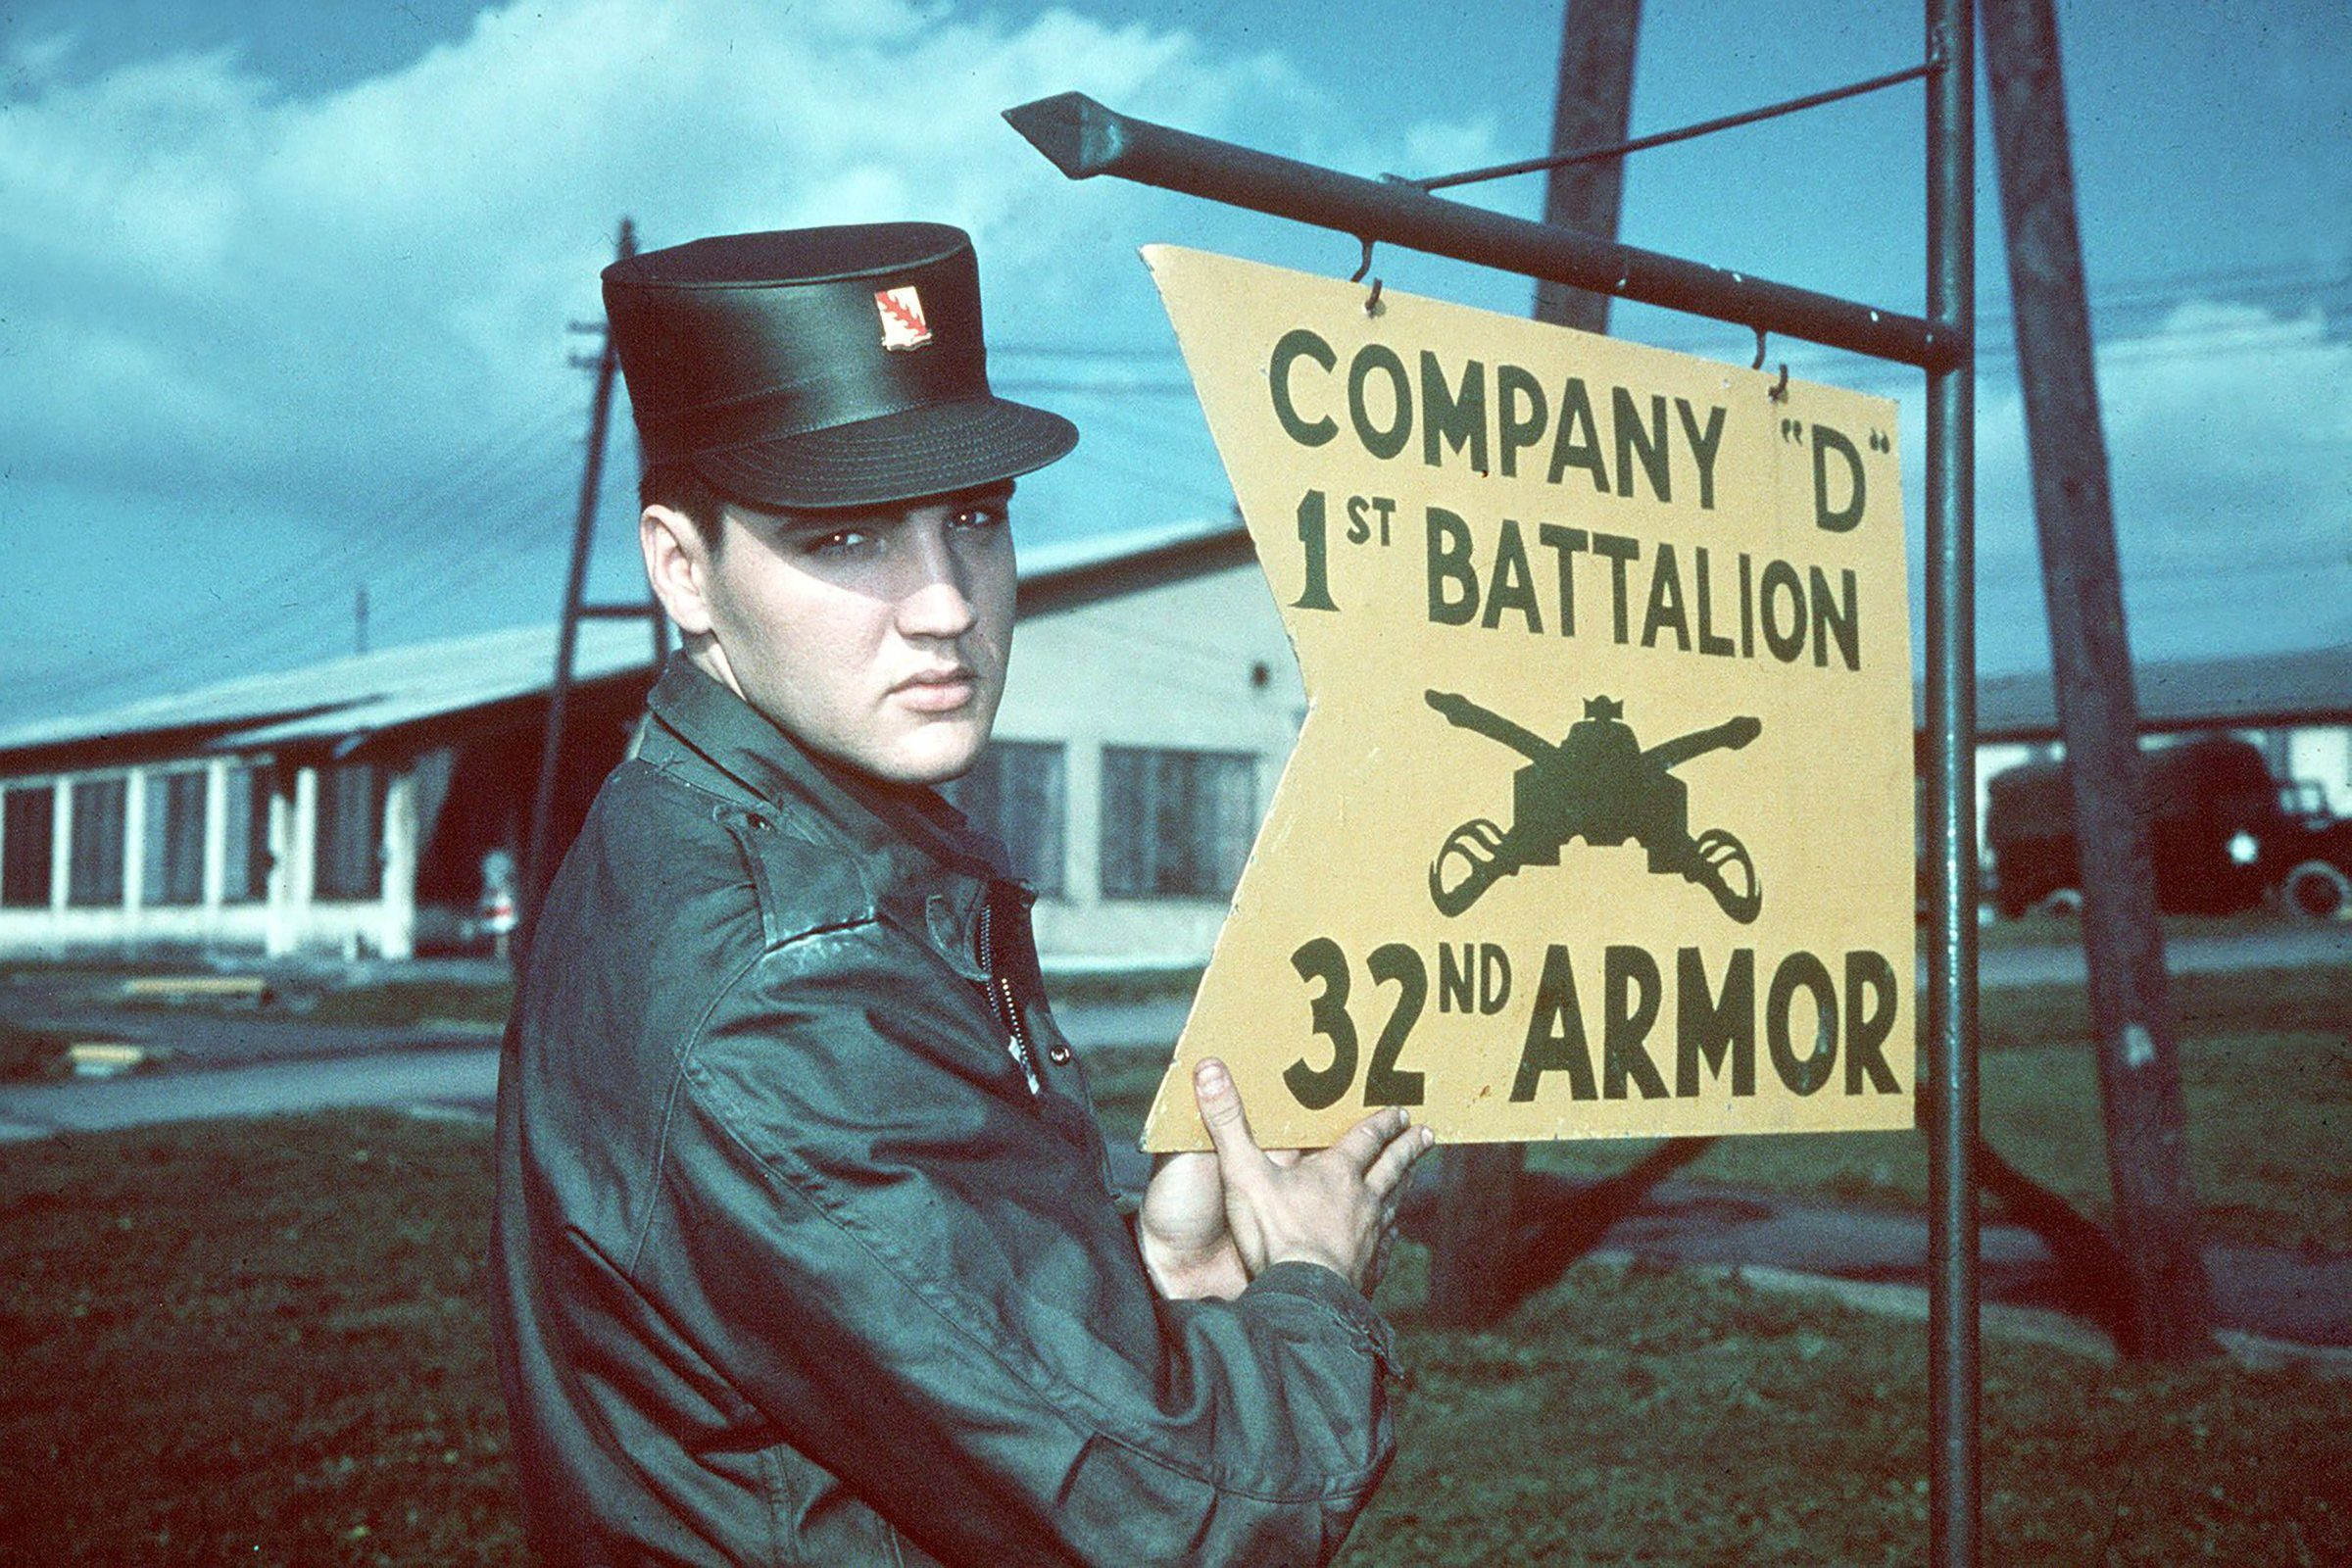 """Mandatory Credit: Photo by AP/Shutterstock (7395468a) ELVIS PRESLEY: ... the """"Pelvis"""", in Army uniform at Company """"D"""" 1st Battalion 32nd Armor, barracks area, Friedberg, West Germany. Undated picture Elvis Presley, FRIEDBERG, Germany"""